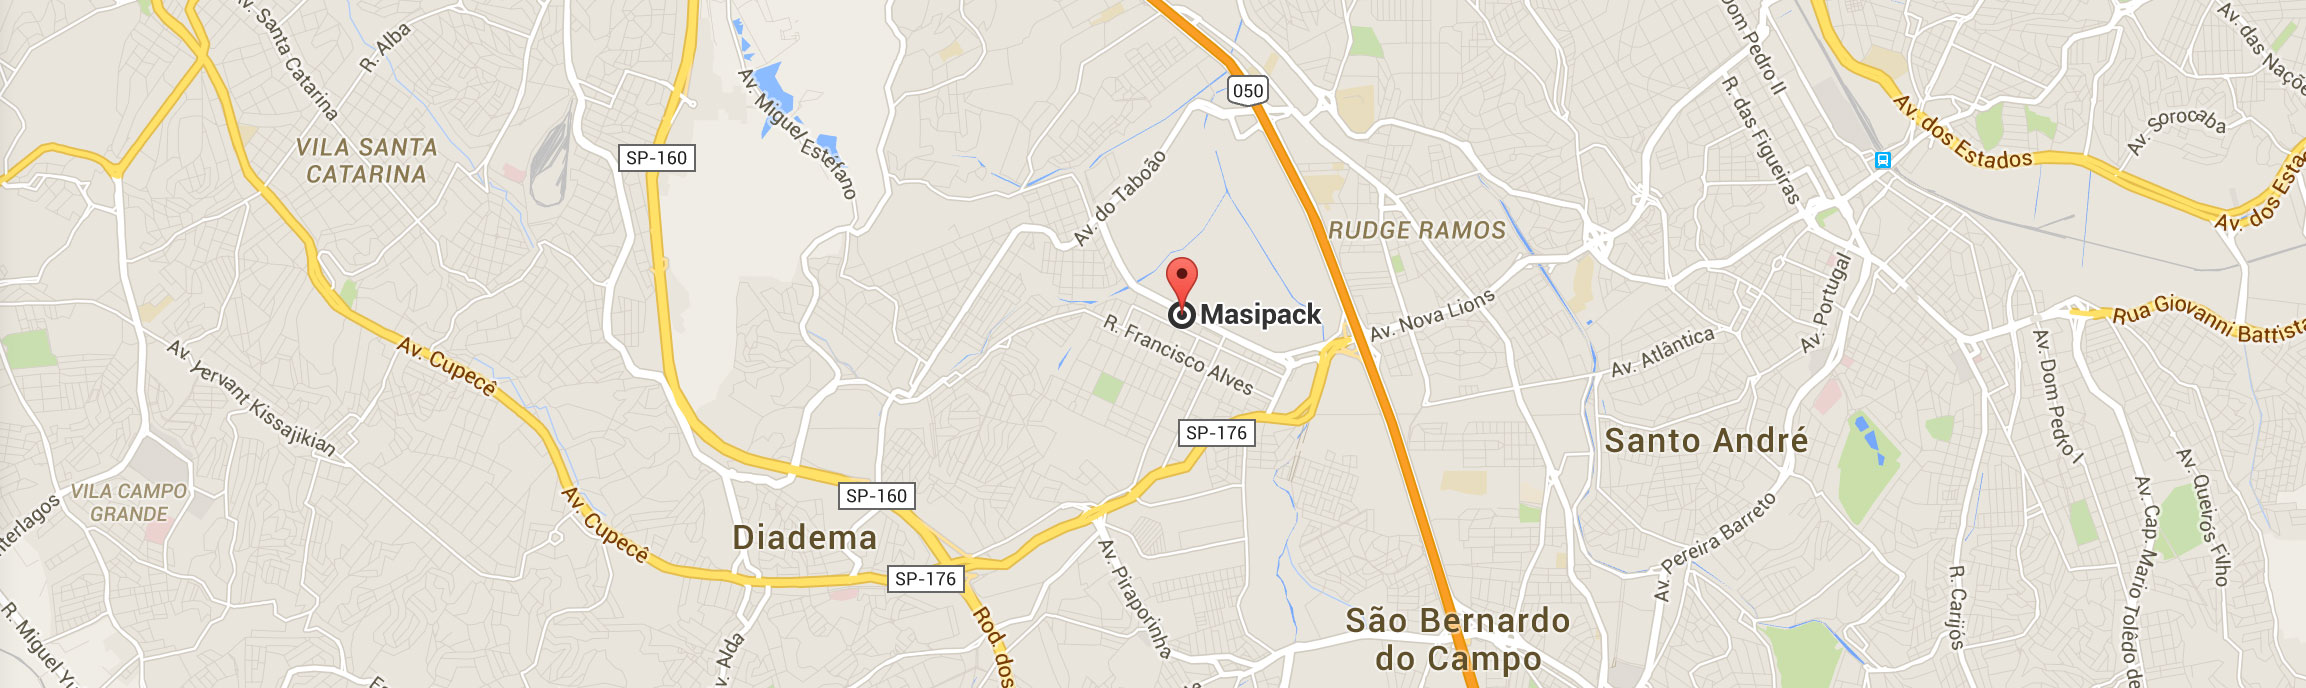 masipack_contact_map_full